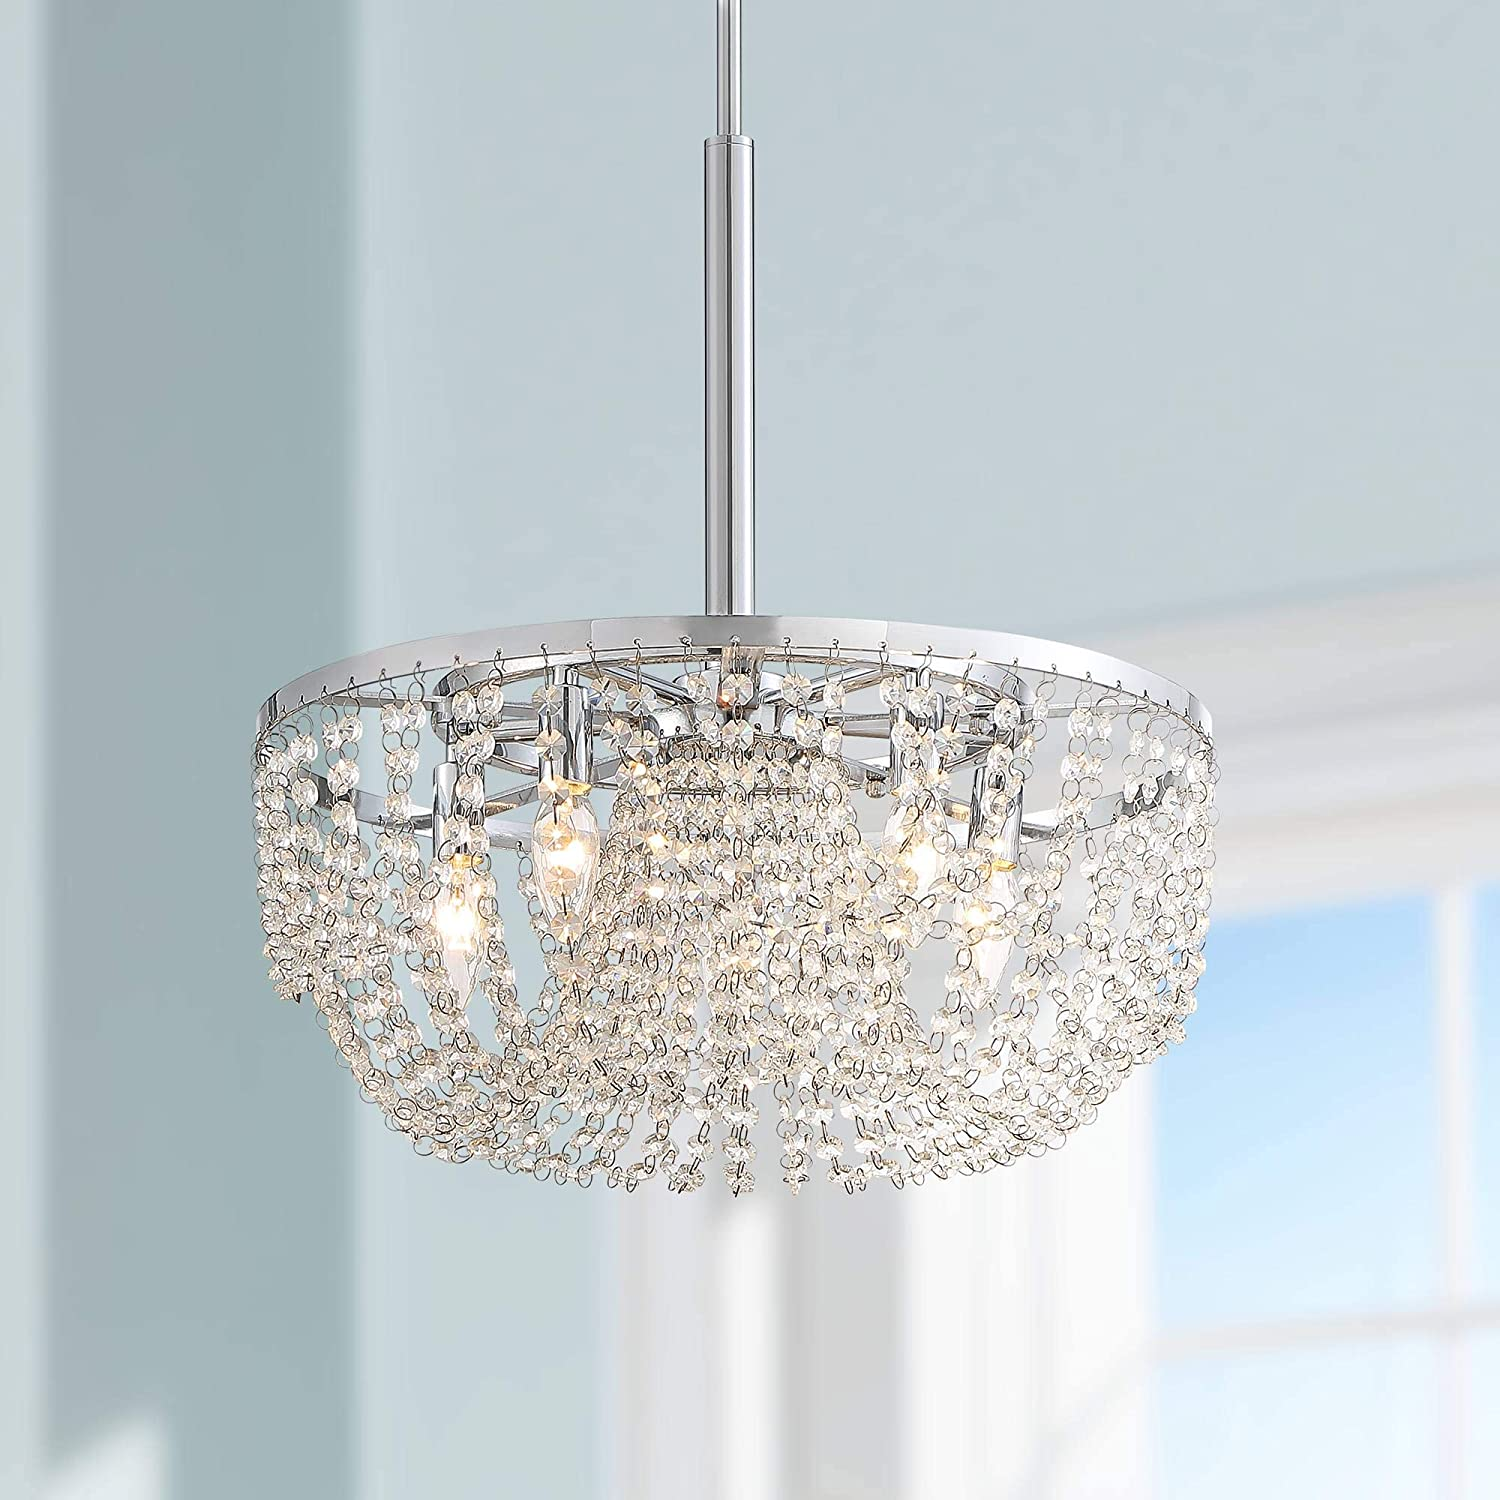 Arden Chrome Pendant Chandelier 18 1/2 Wide Modern Clear K9 Crystal Strands 5-Light Fixture for Dining Room House Foyer Kitchen Island Entryway Bedroom - Vienna Full Spectrum